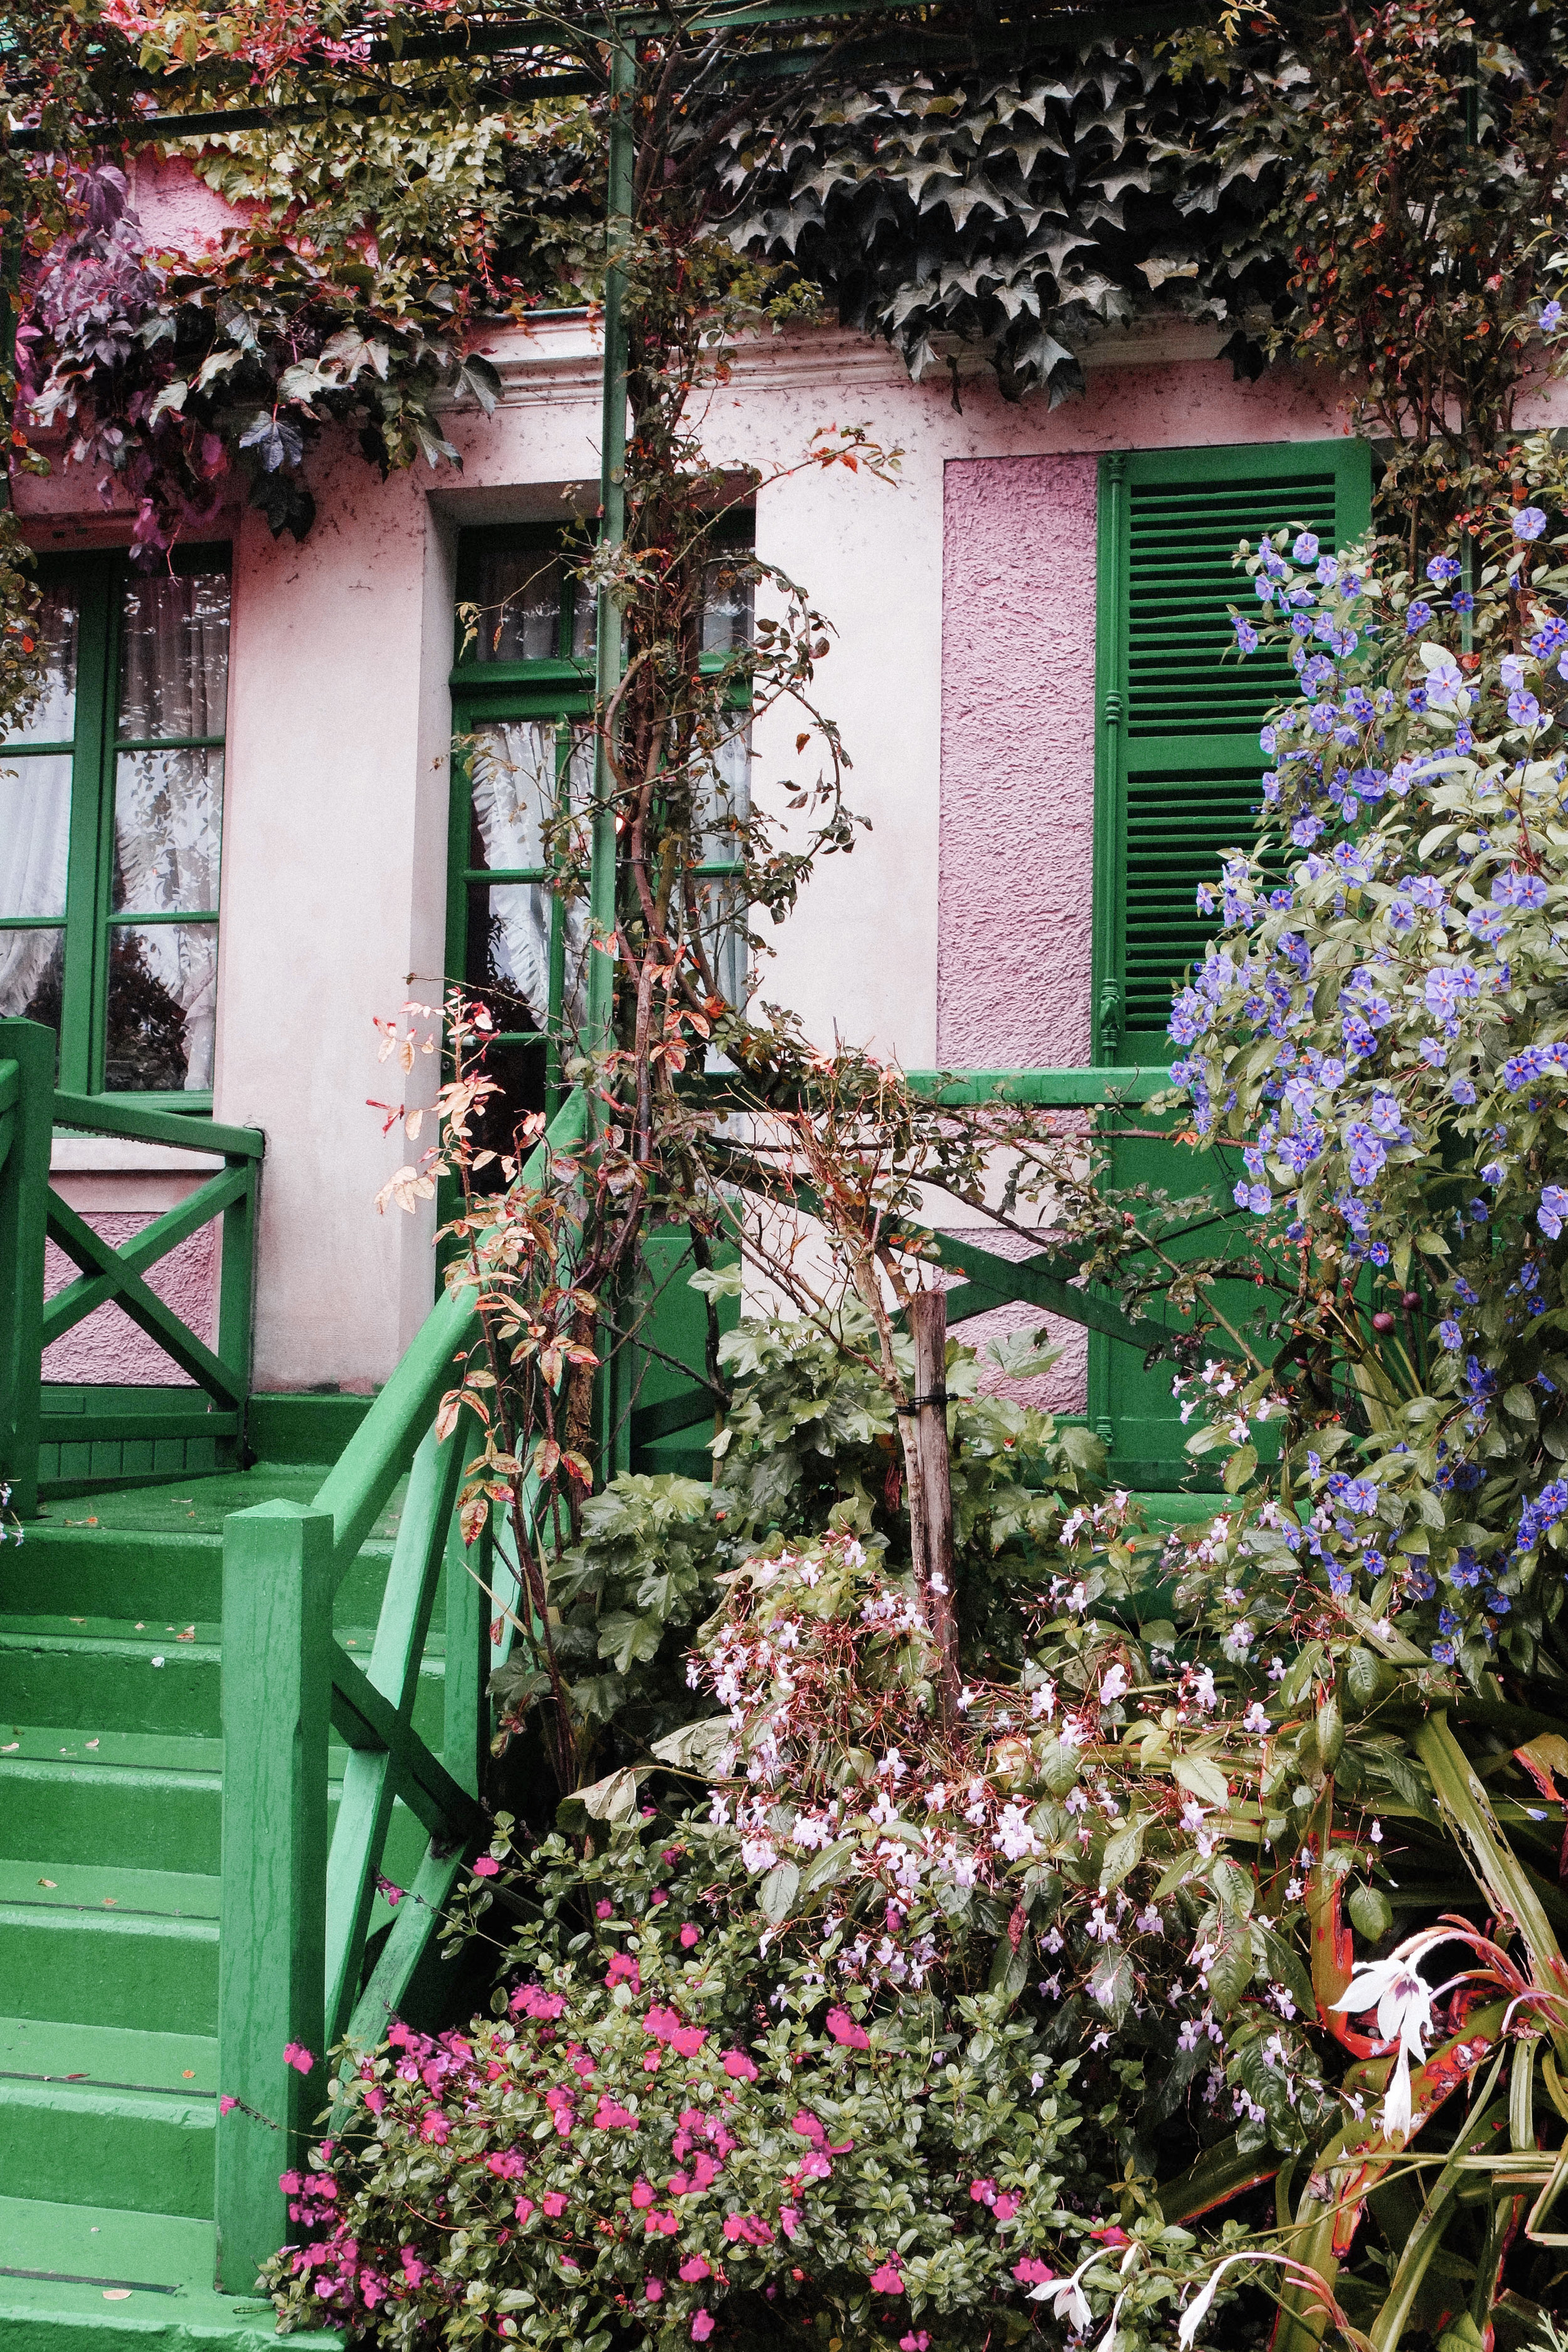 Lesly Lotha - Giverny - France - Europe - 9